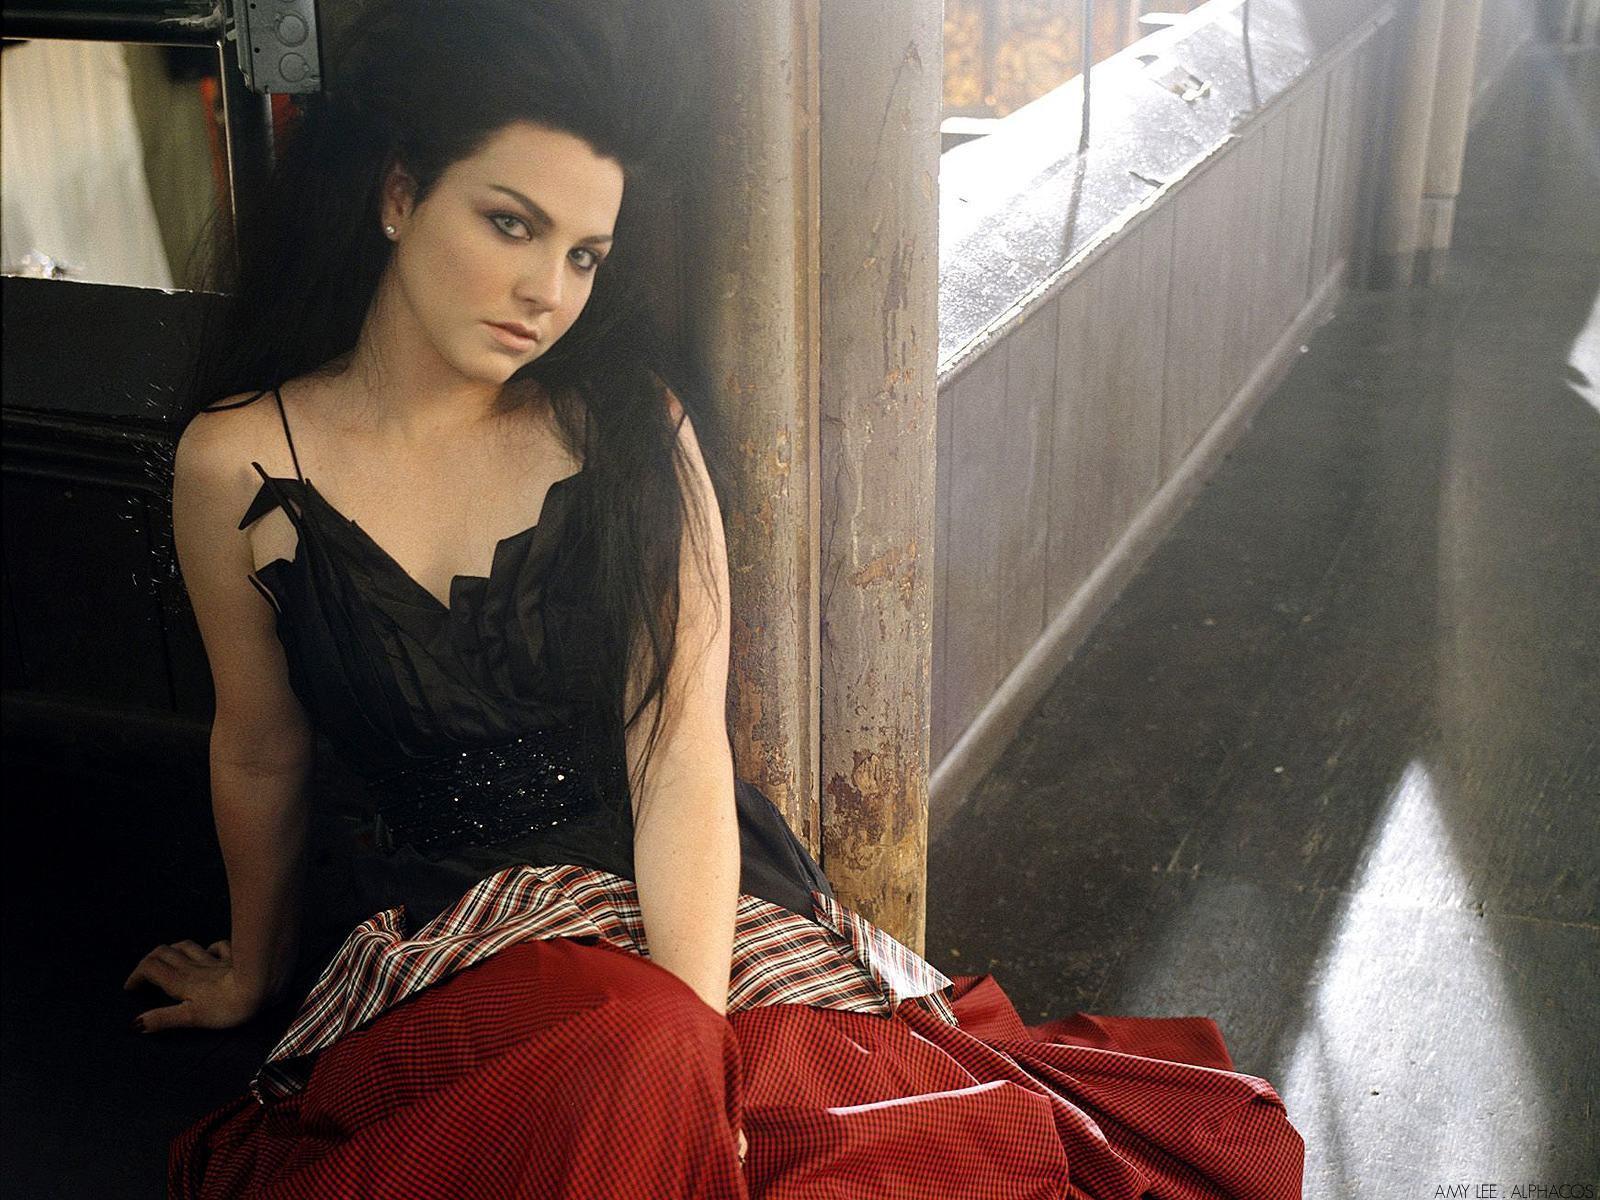 Amy Lee images amy Lee HD wallpaper and background photos 17285110 1600x1200